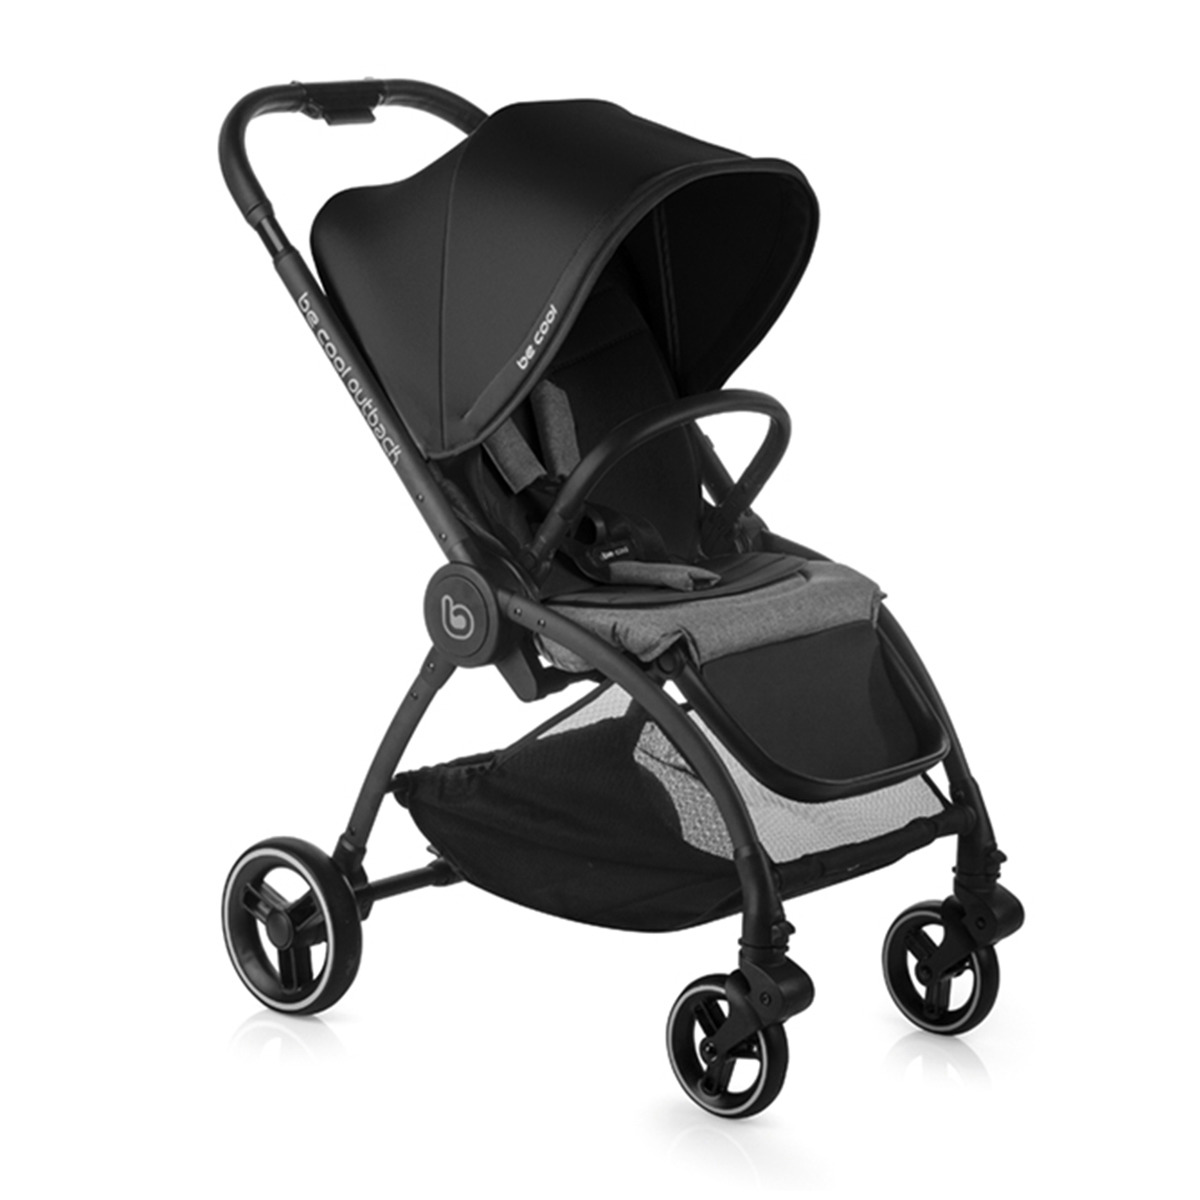 Silla de paseo Be Cool Outback Be Black negro